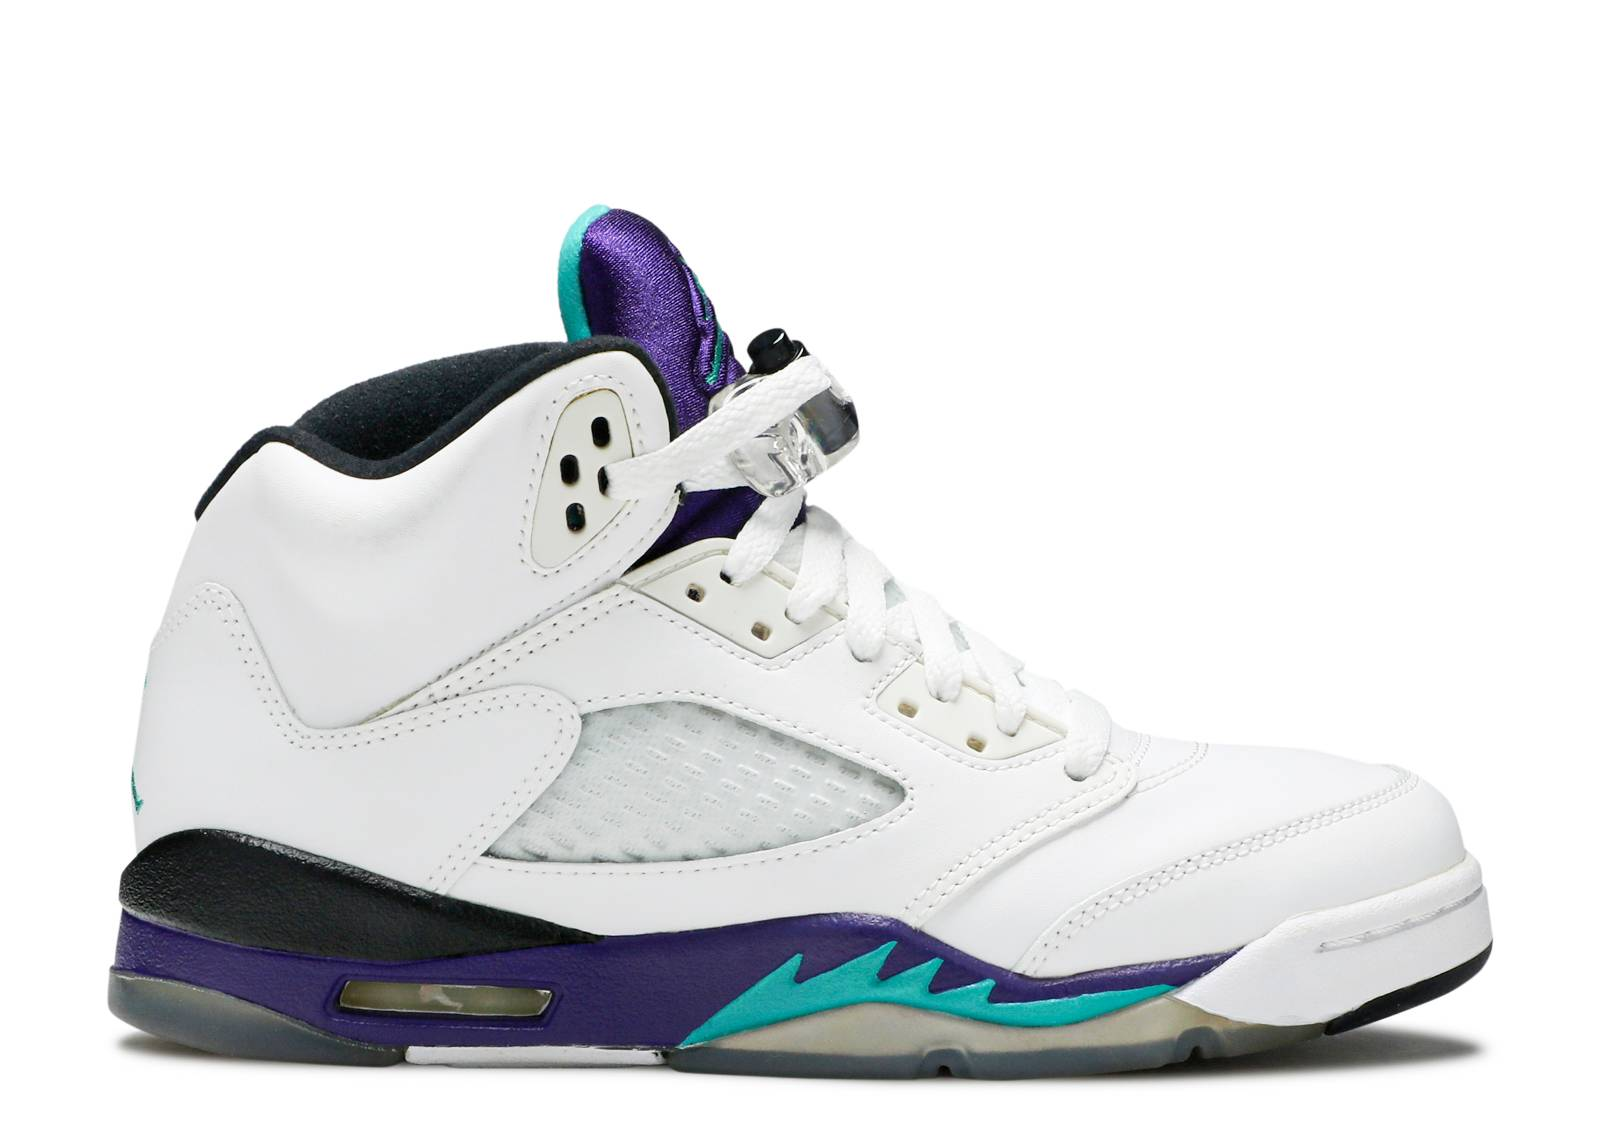 air jordan 5 retro gs grape 2013 release air jordan 440888 108 white new emerald grp. Black Bedroom Furniture Sets. Home Design Ideas